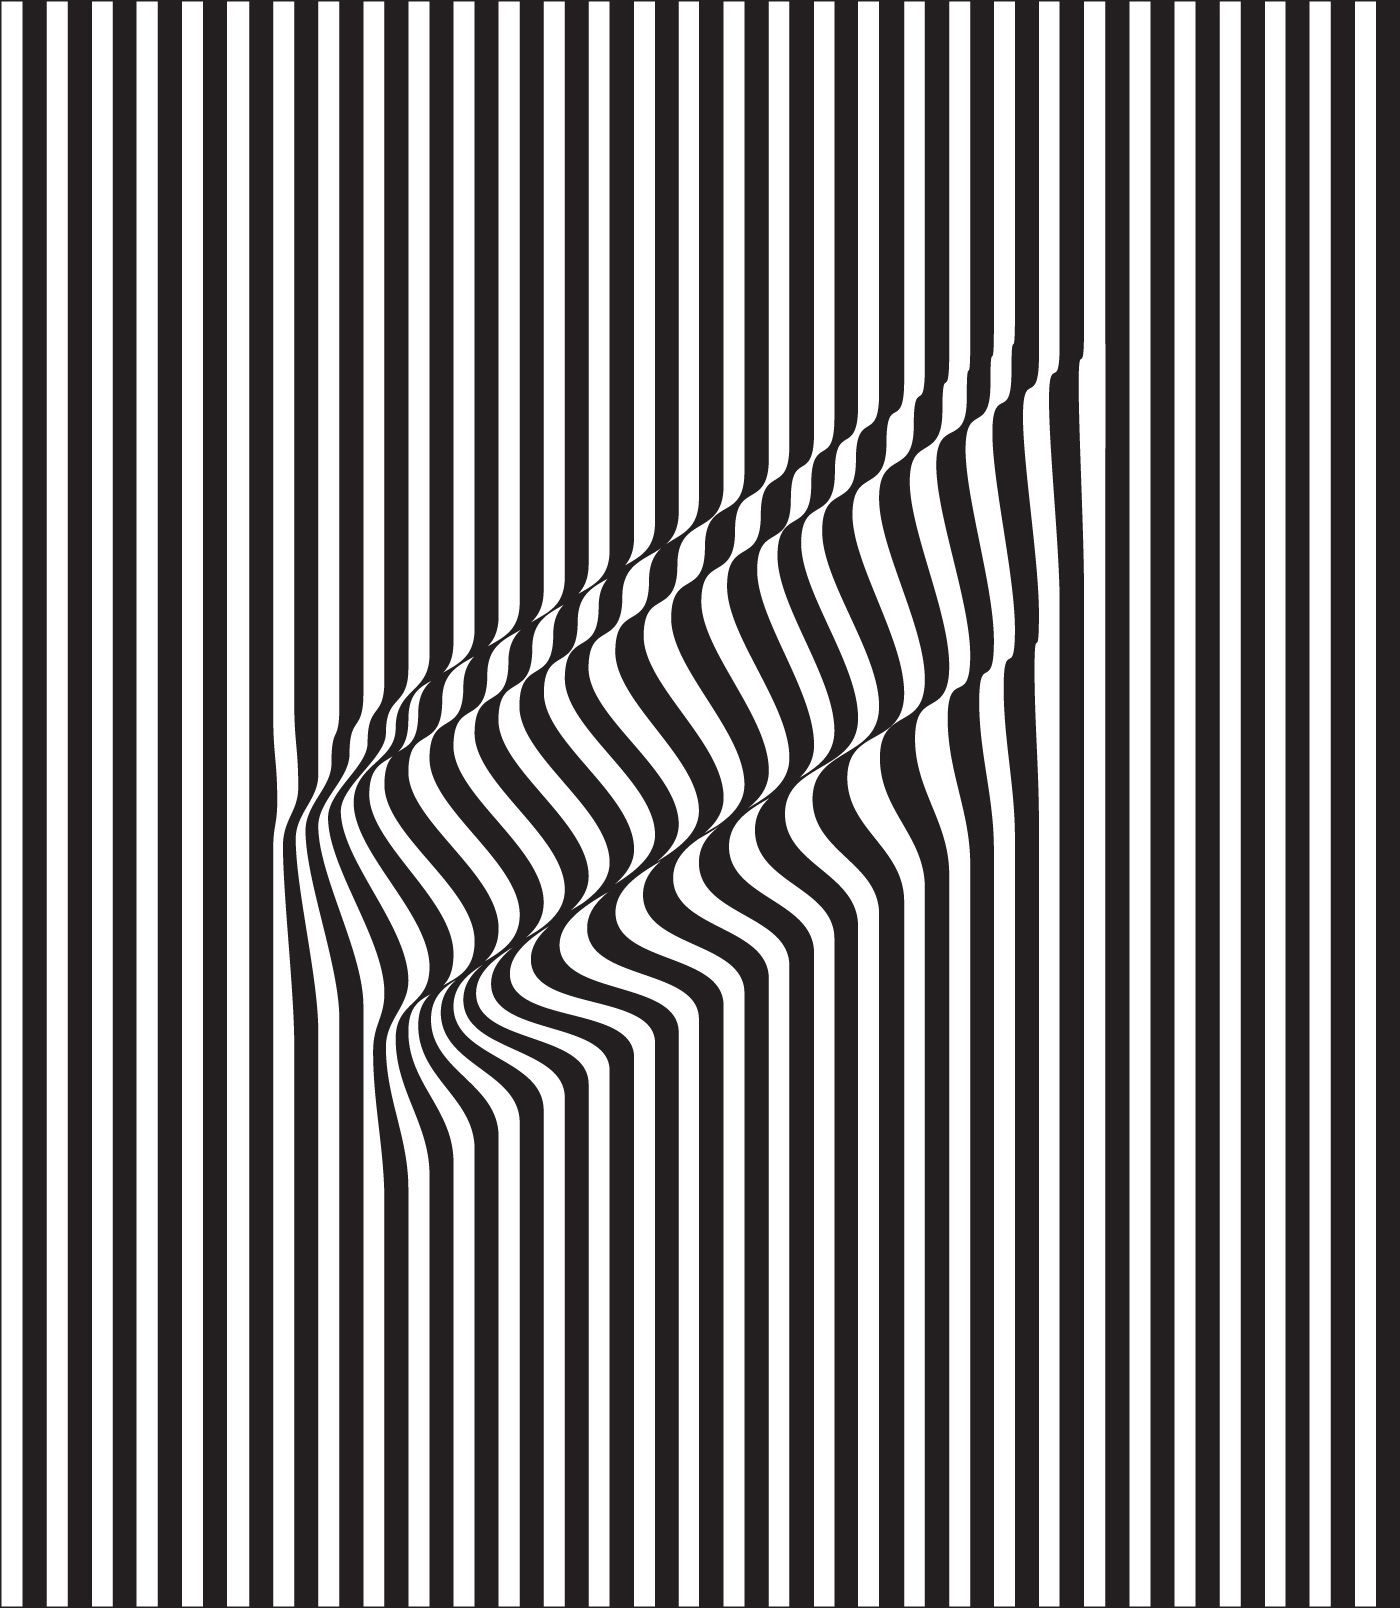 STRIPES (black) by Charles Williams (London, UK) 201-07 ...